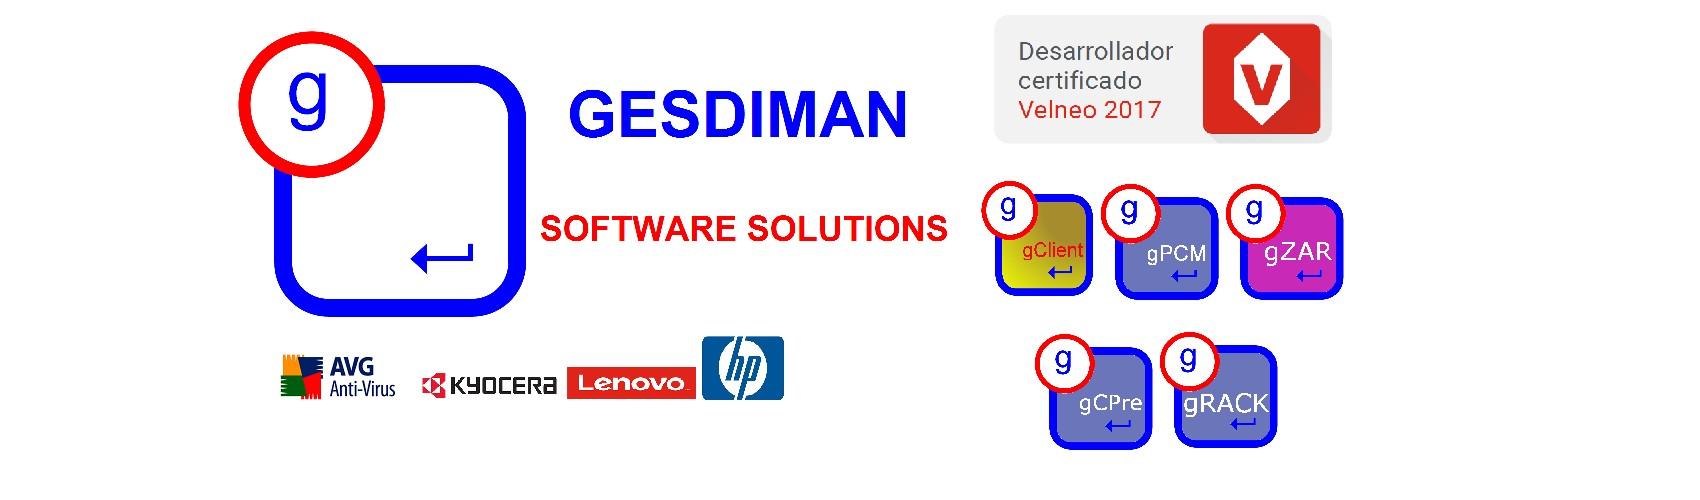 SOFTWARE PROFESIONAL